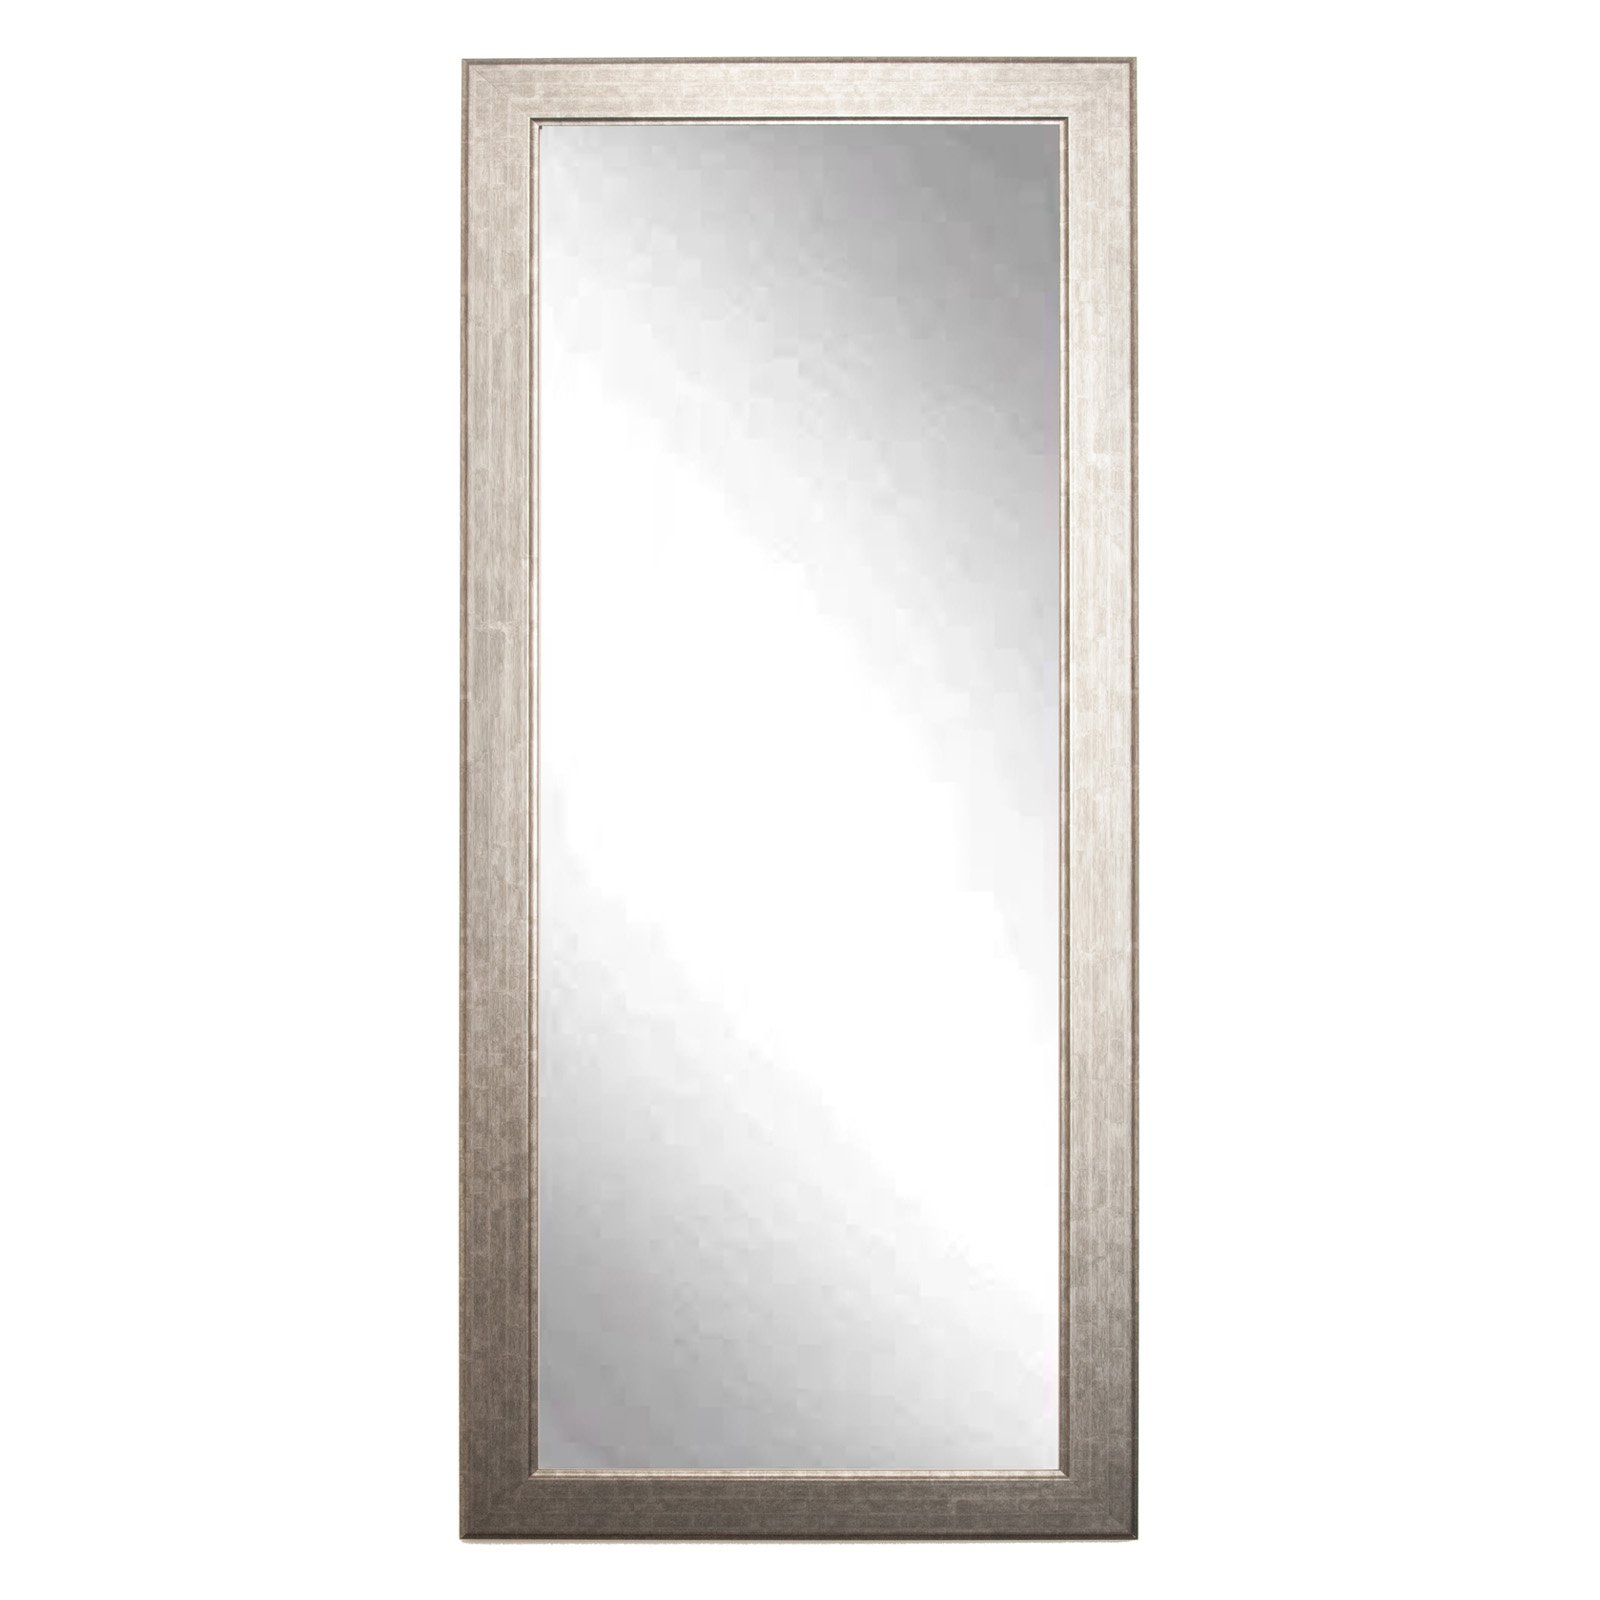 BrandtWorks Subway Leaning Floor Mirror by Overstock